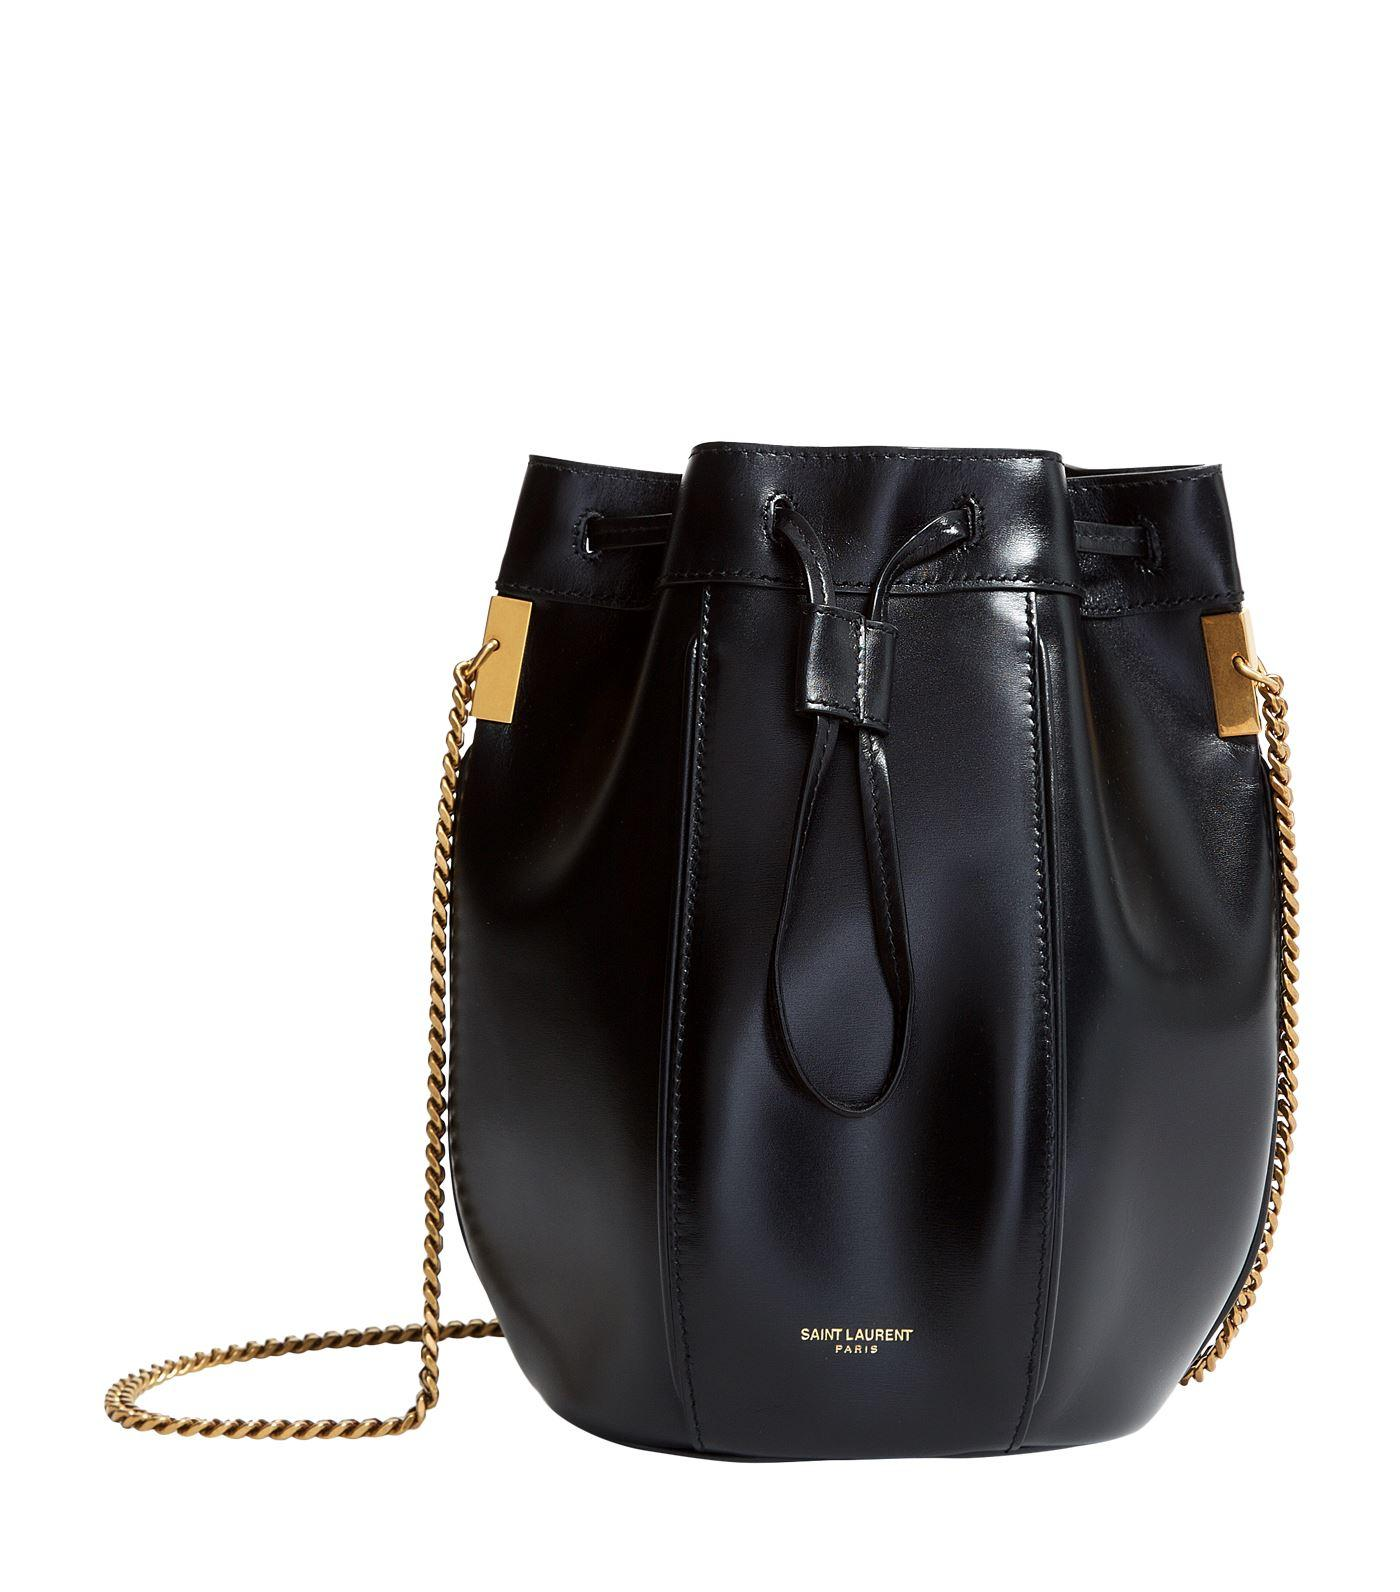 aa7d35ea8c56 Lyst - Saint Laurent Small Leather Talitha Bucket Bag in Black